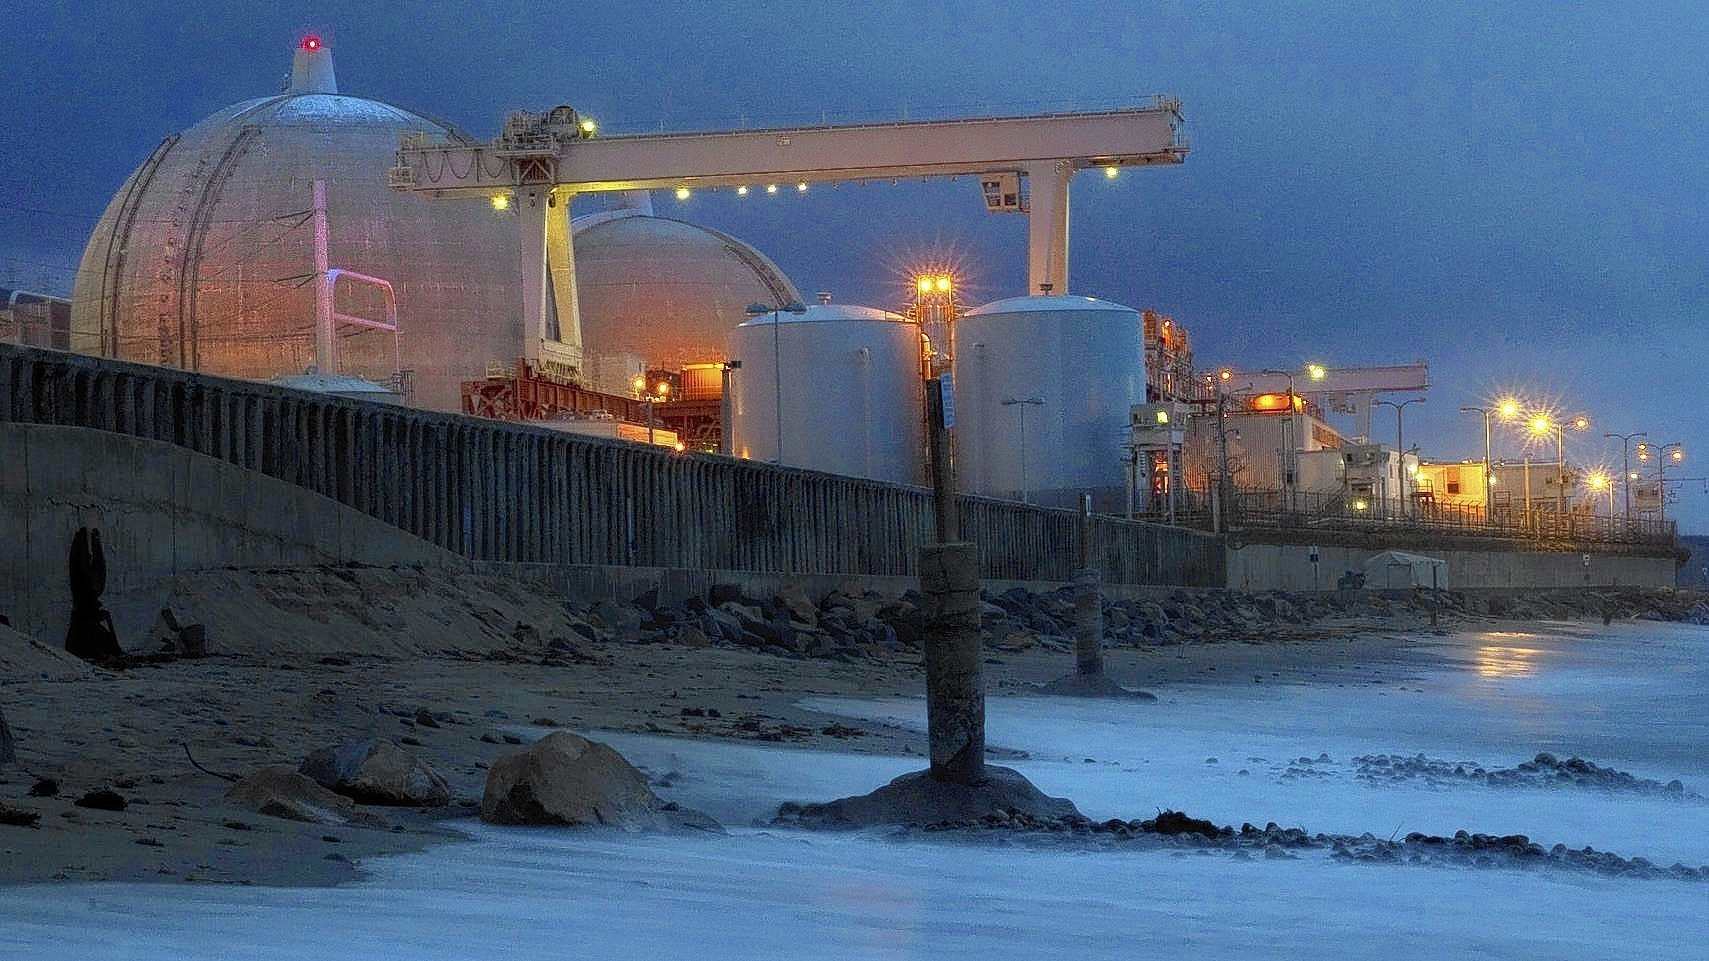 PUC releases report on generator failure at San Onofre nuclear plant